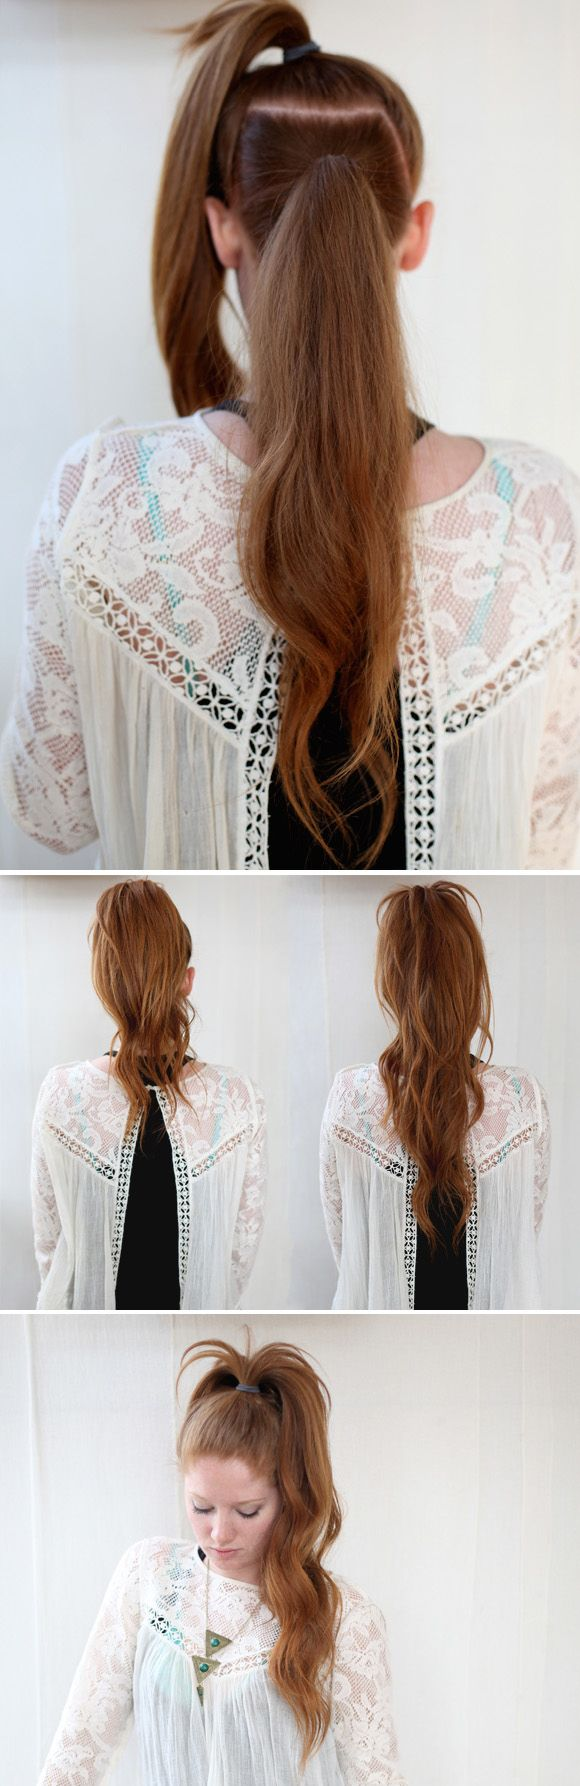 How to get that extra long ponytail look